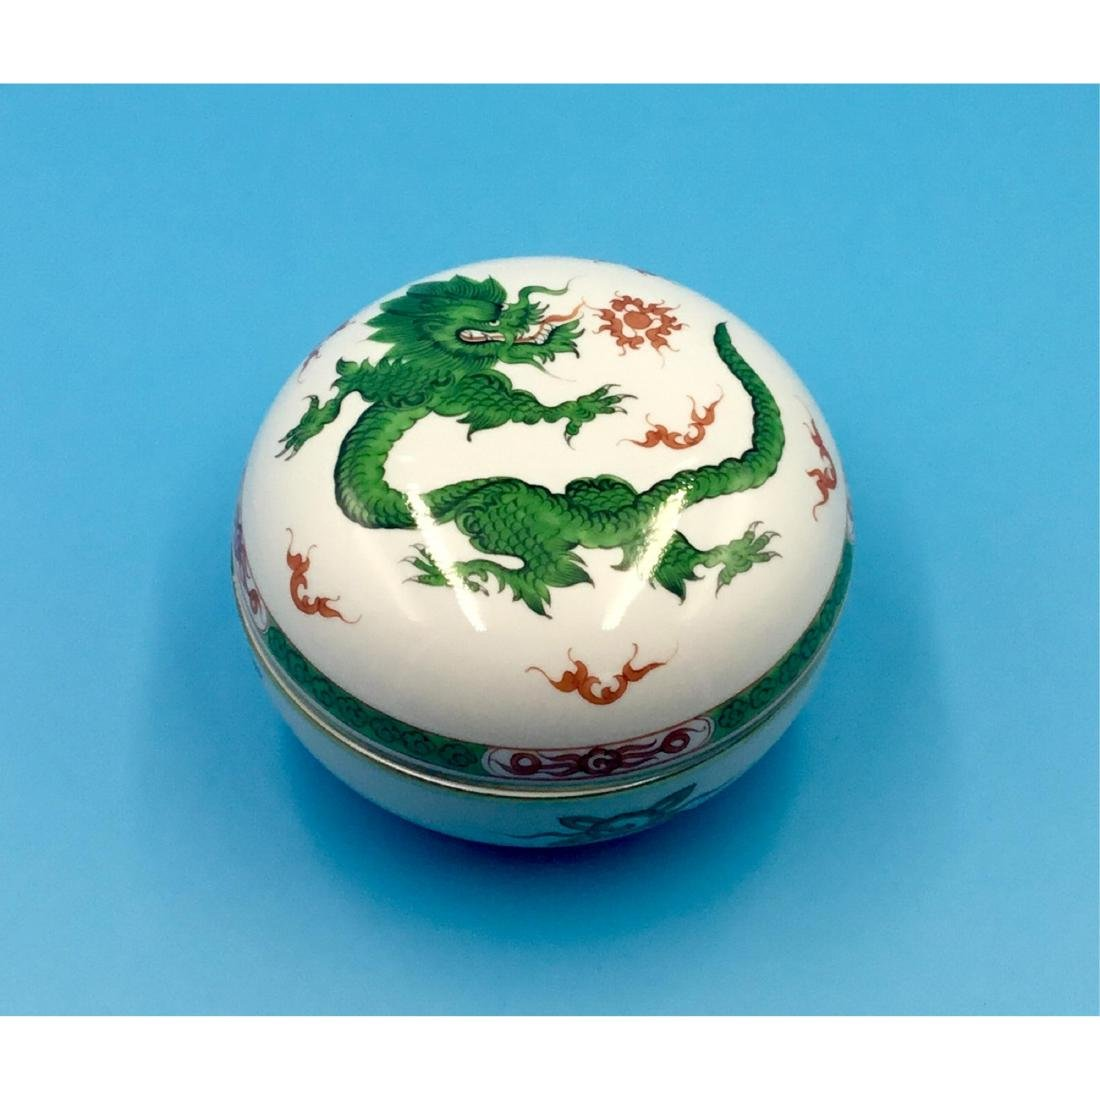 MEISSEN GREEN MING DRAGON PORCELAIN BOX